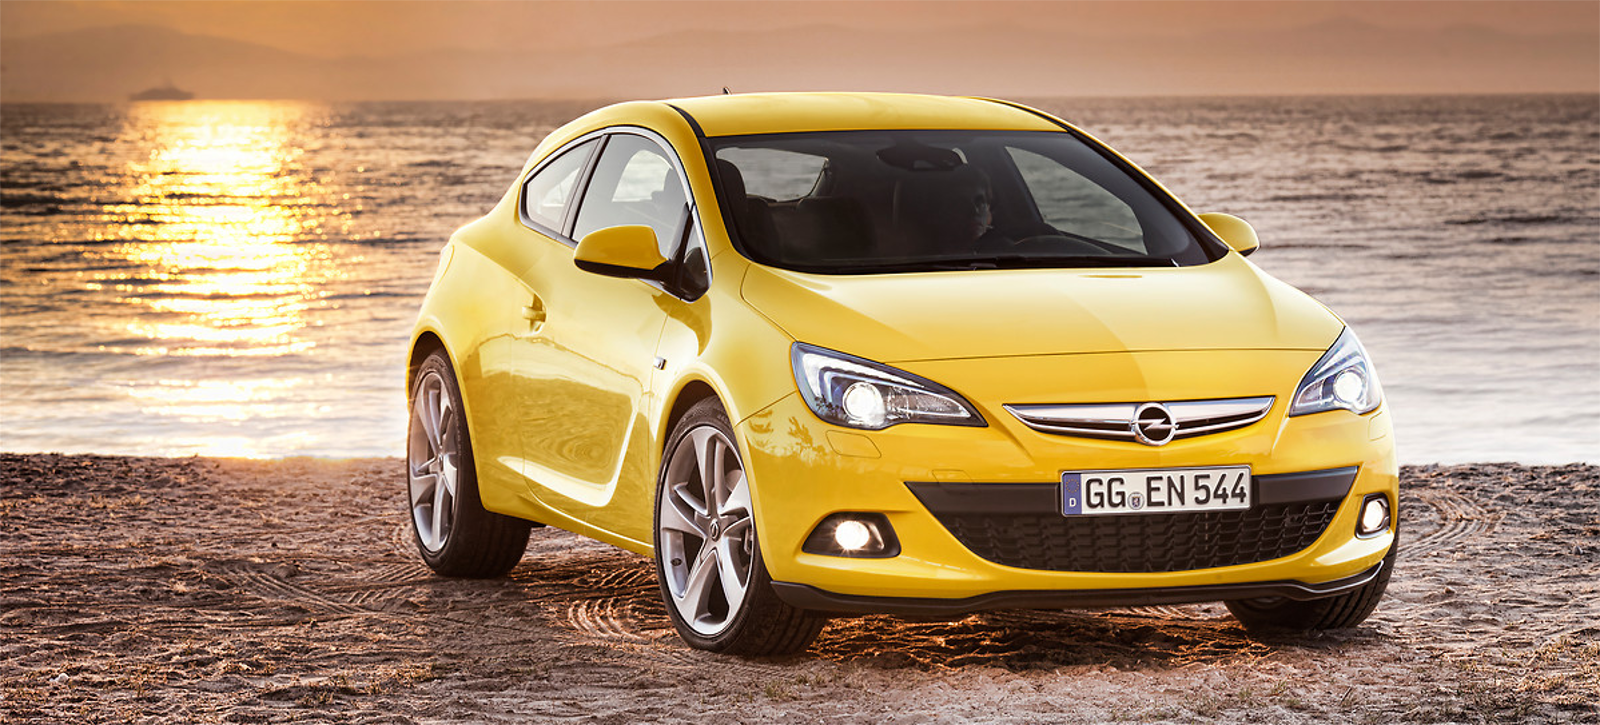 Lateral opel gtc